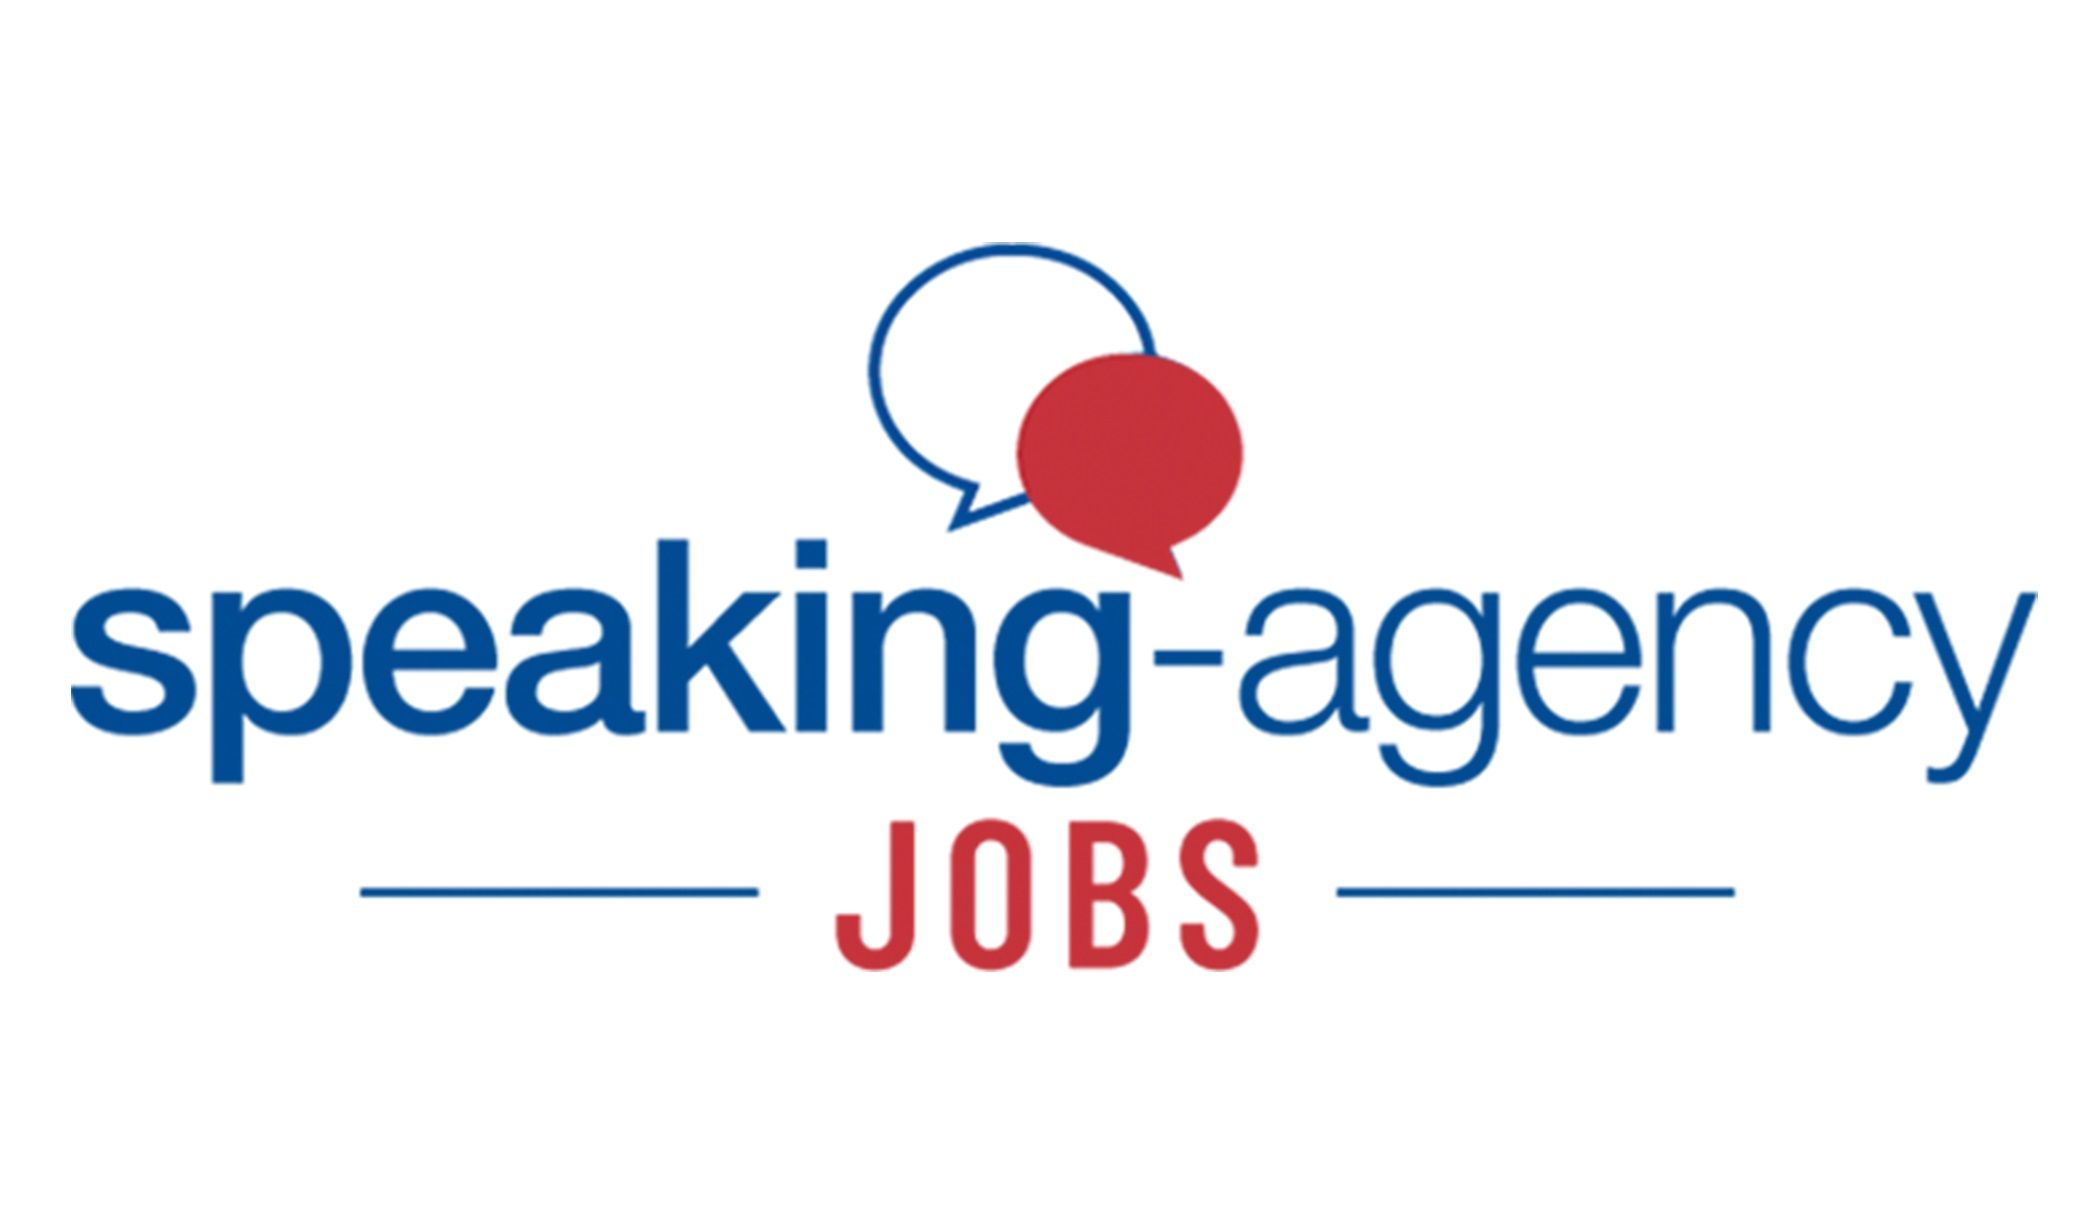 Jobs by Speaking-Agency in france